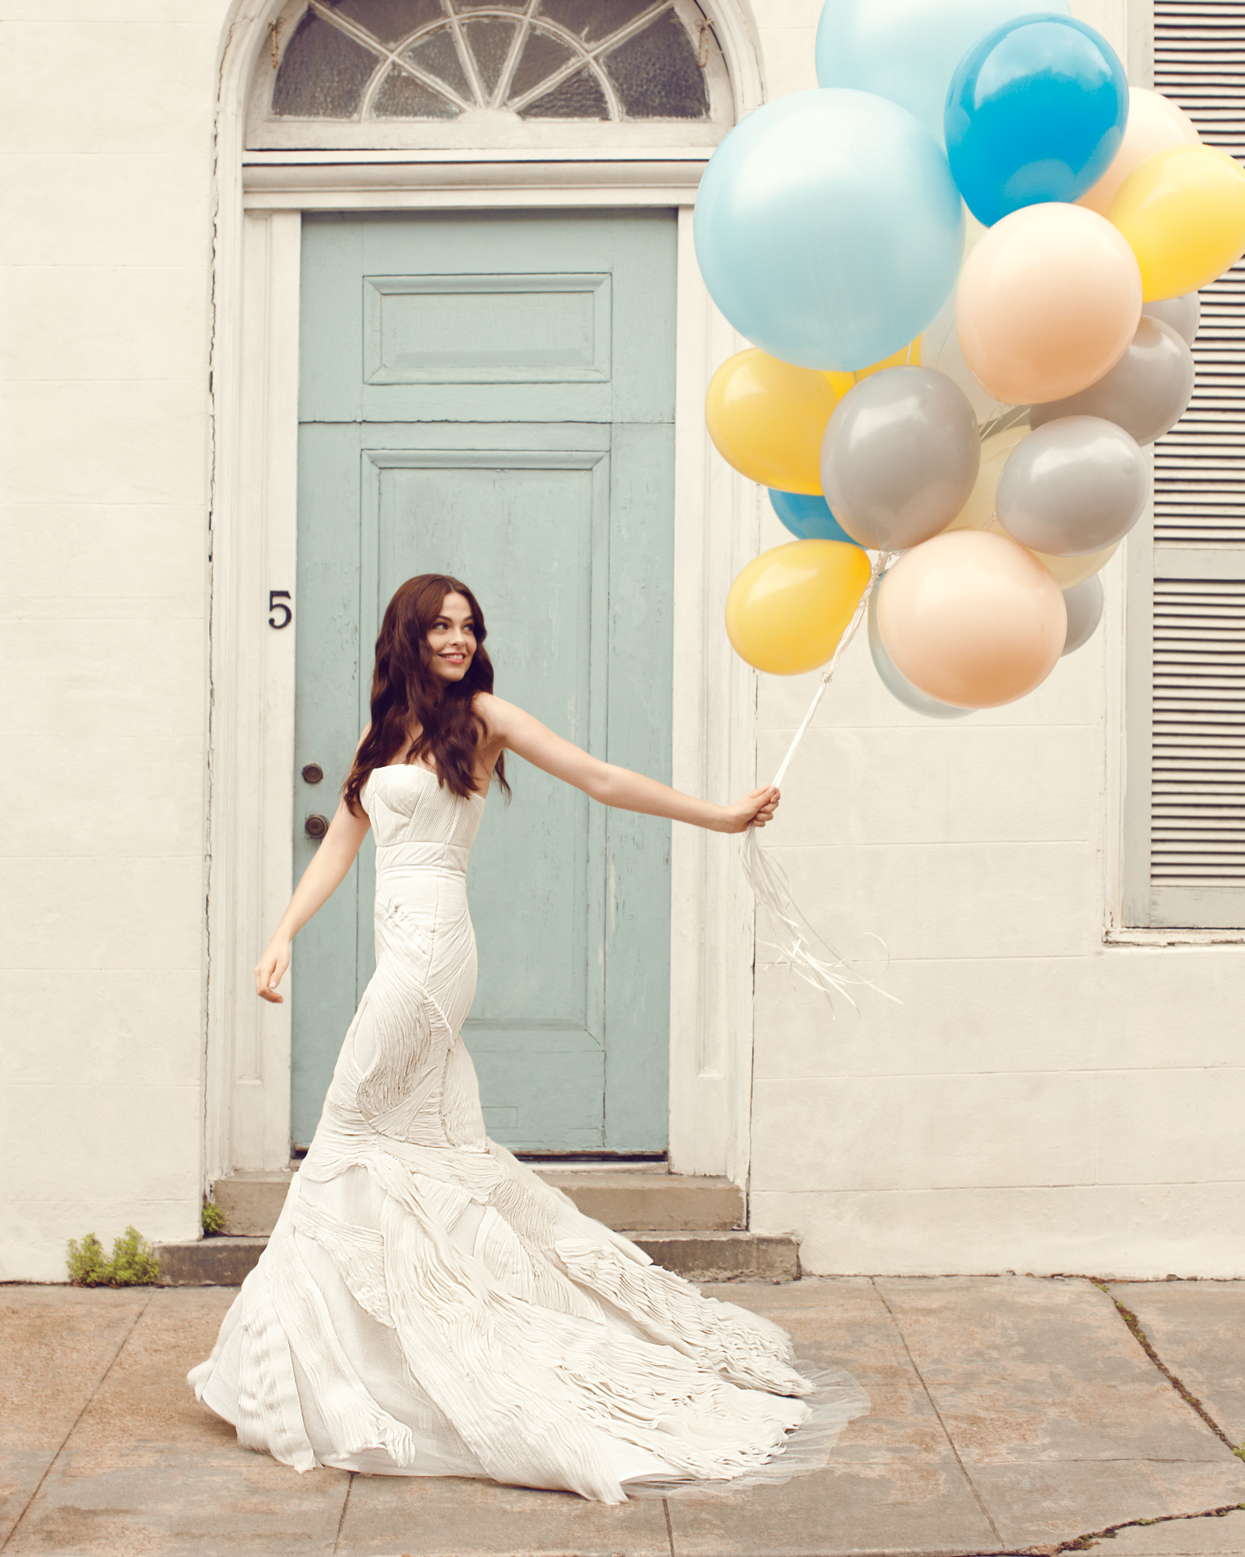 wedding-dress-2-mwd108453.jpg